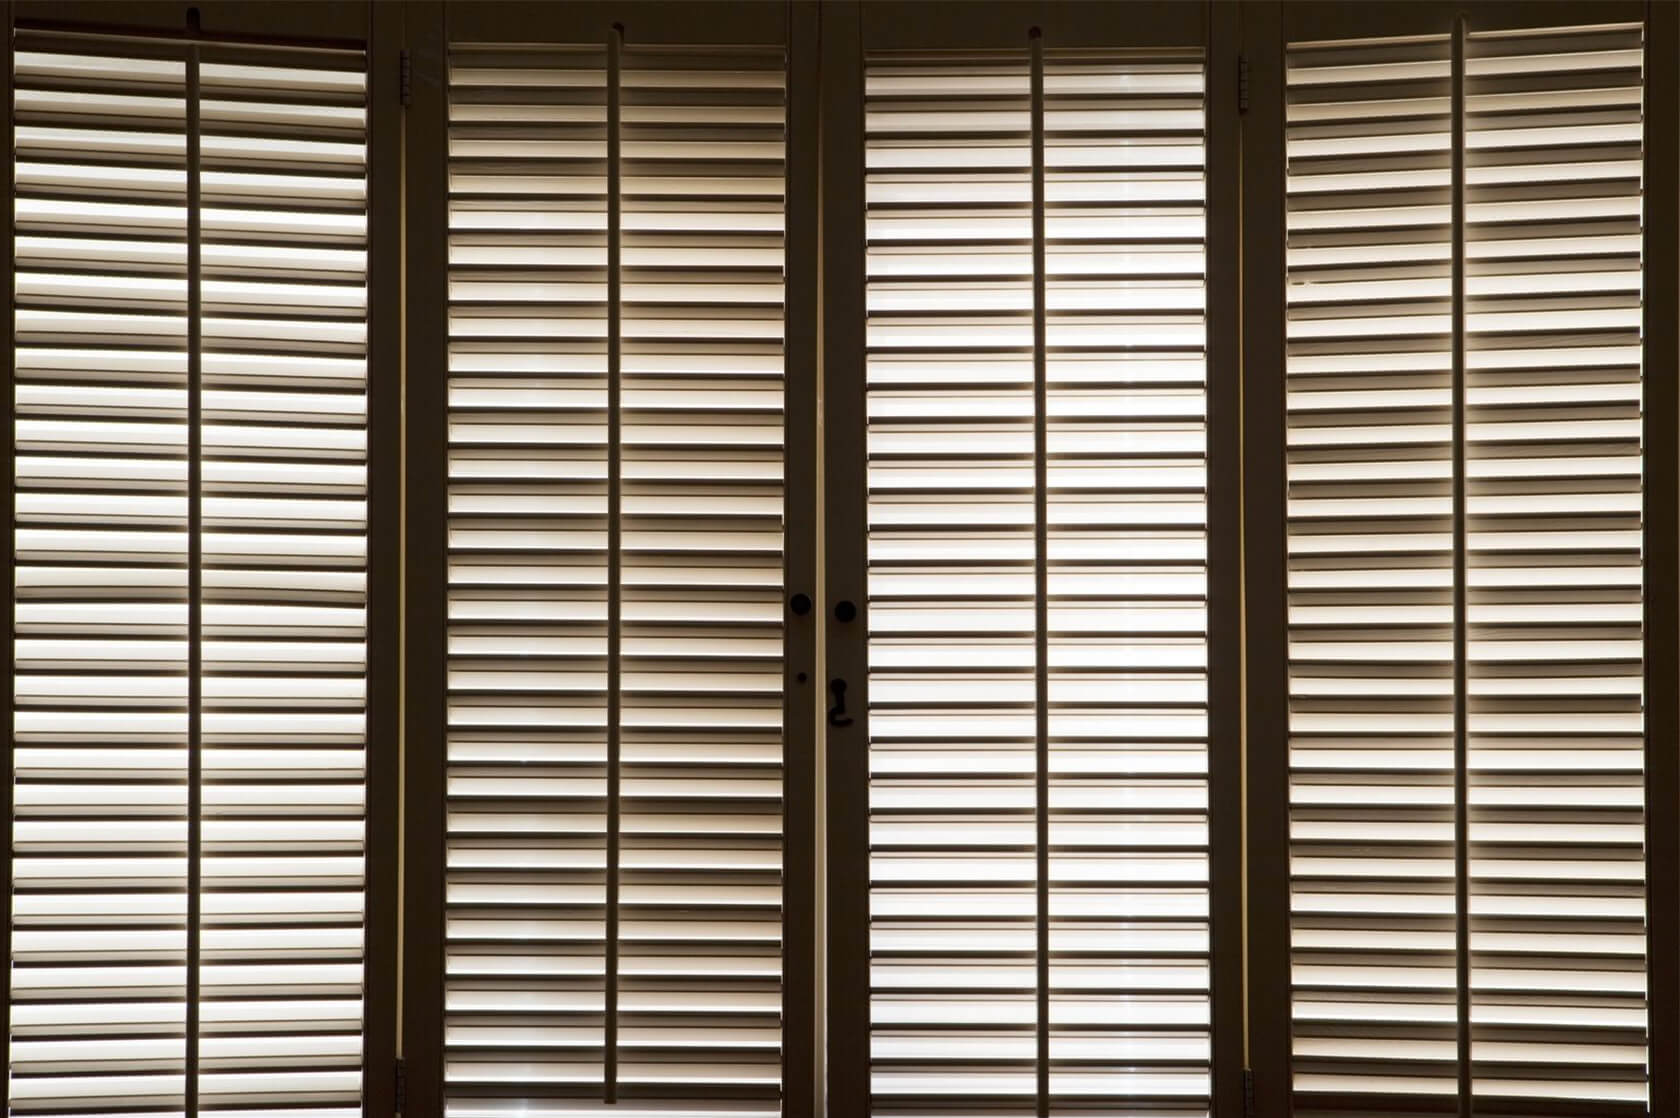 Wood Venetian Blinds In Essex Get Free Blind Fitting Quote